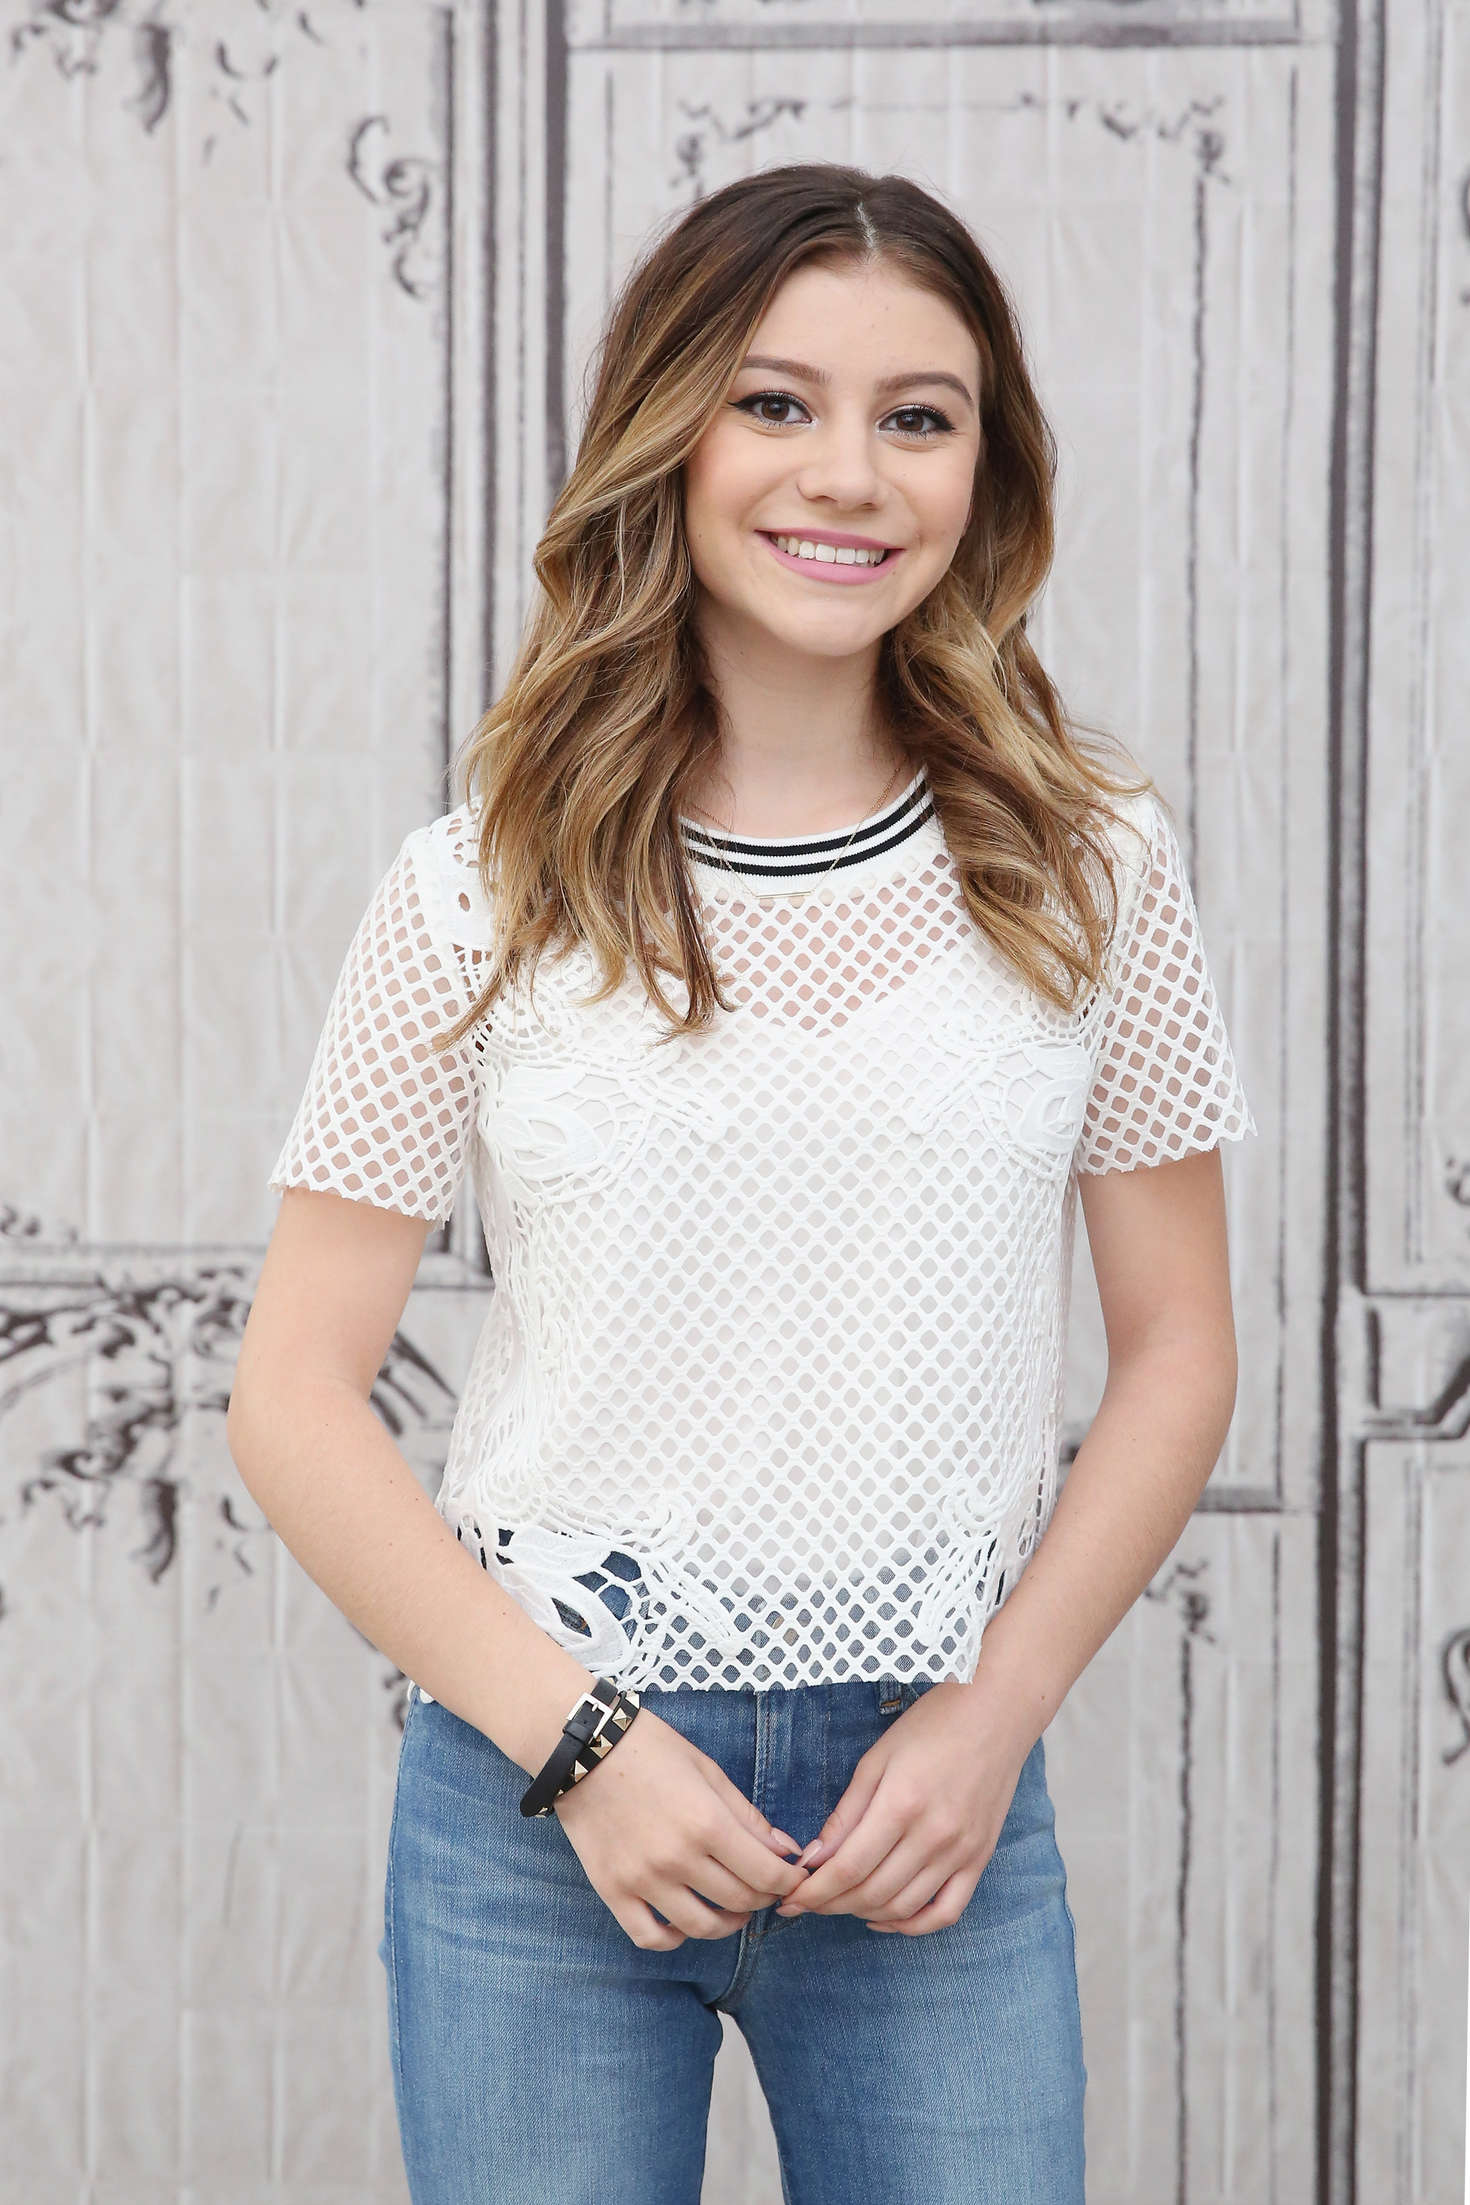 Genevieve Hannelius - AOL Build Speaker Series in New York City